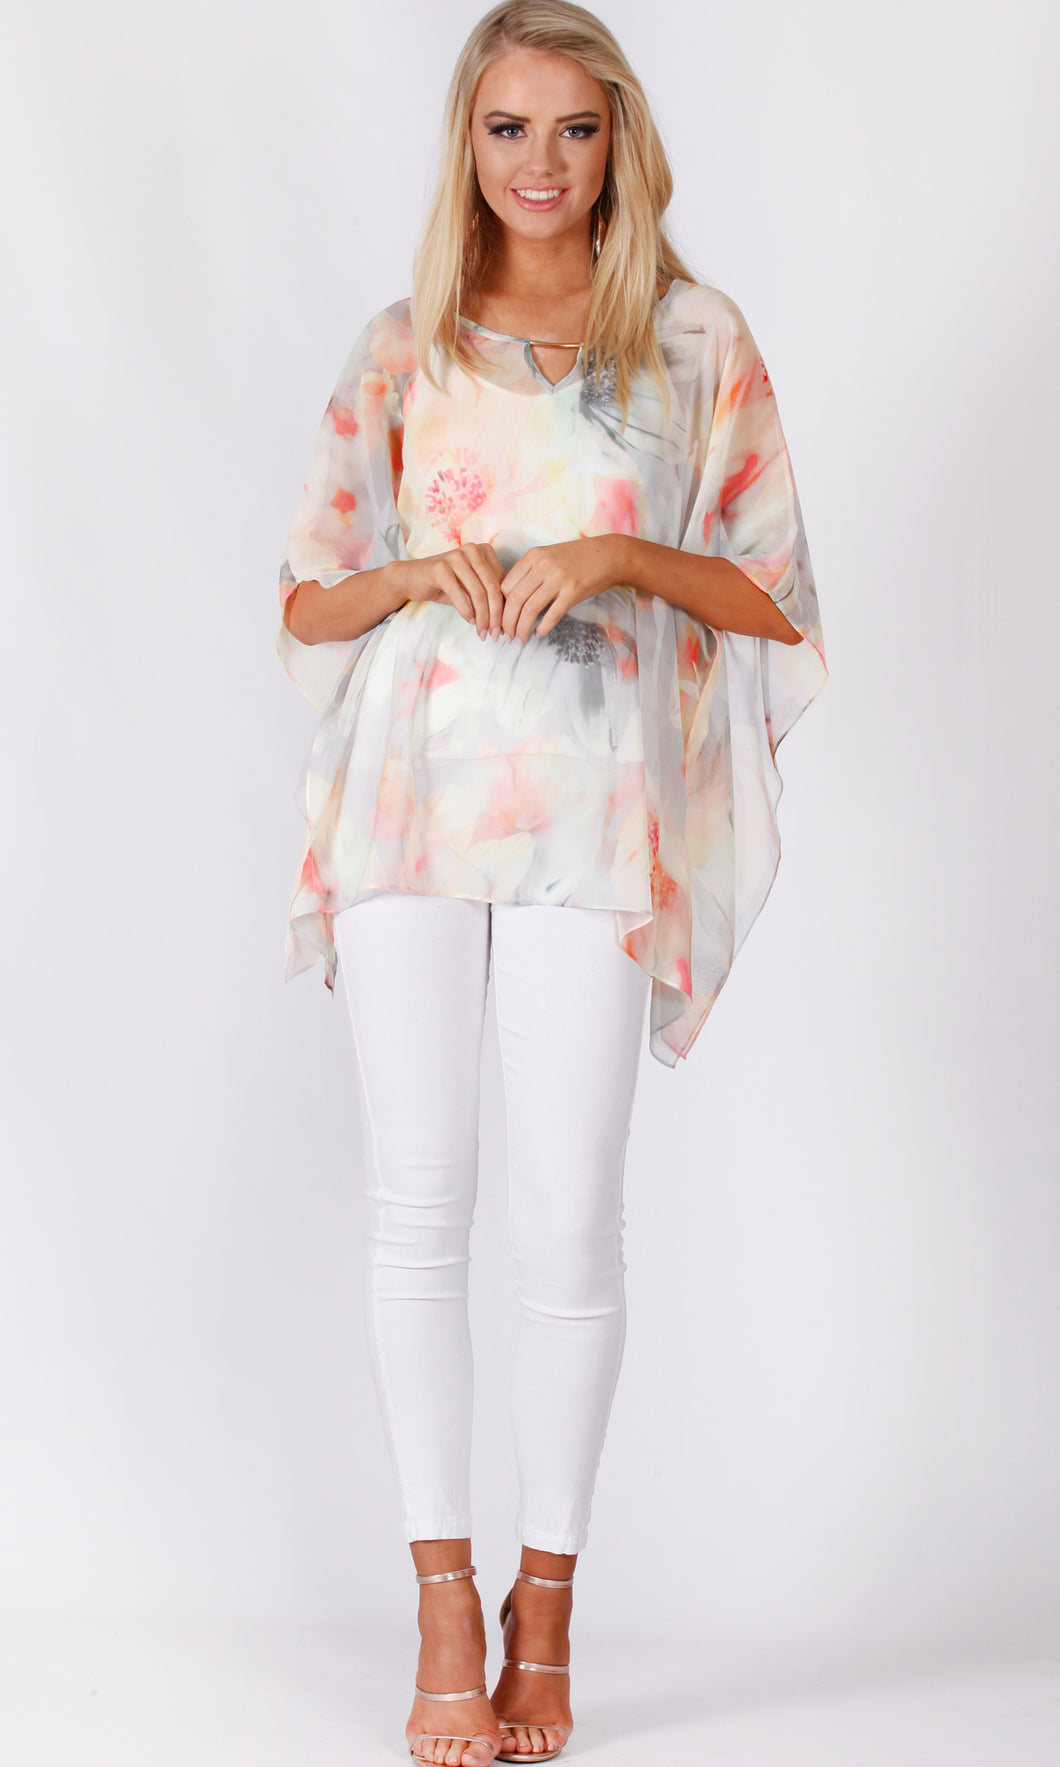 VS7233-1TB APRICOT FLORAL TUNIC TOP (Pack)